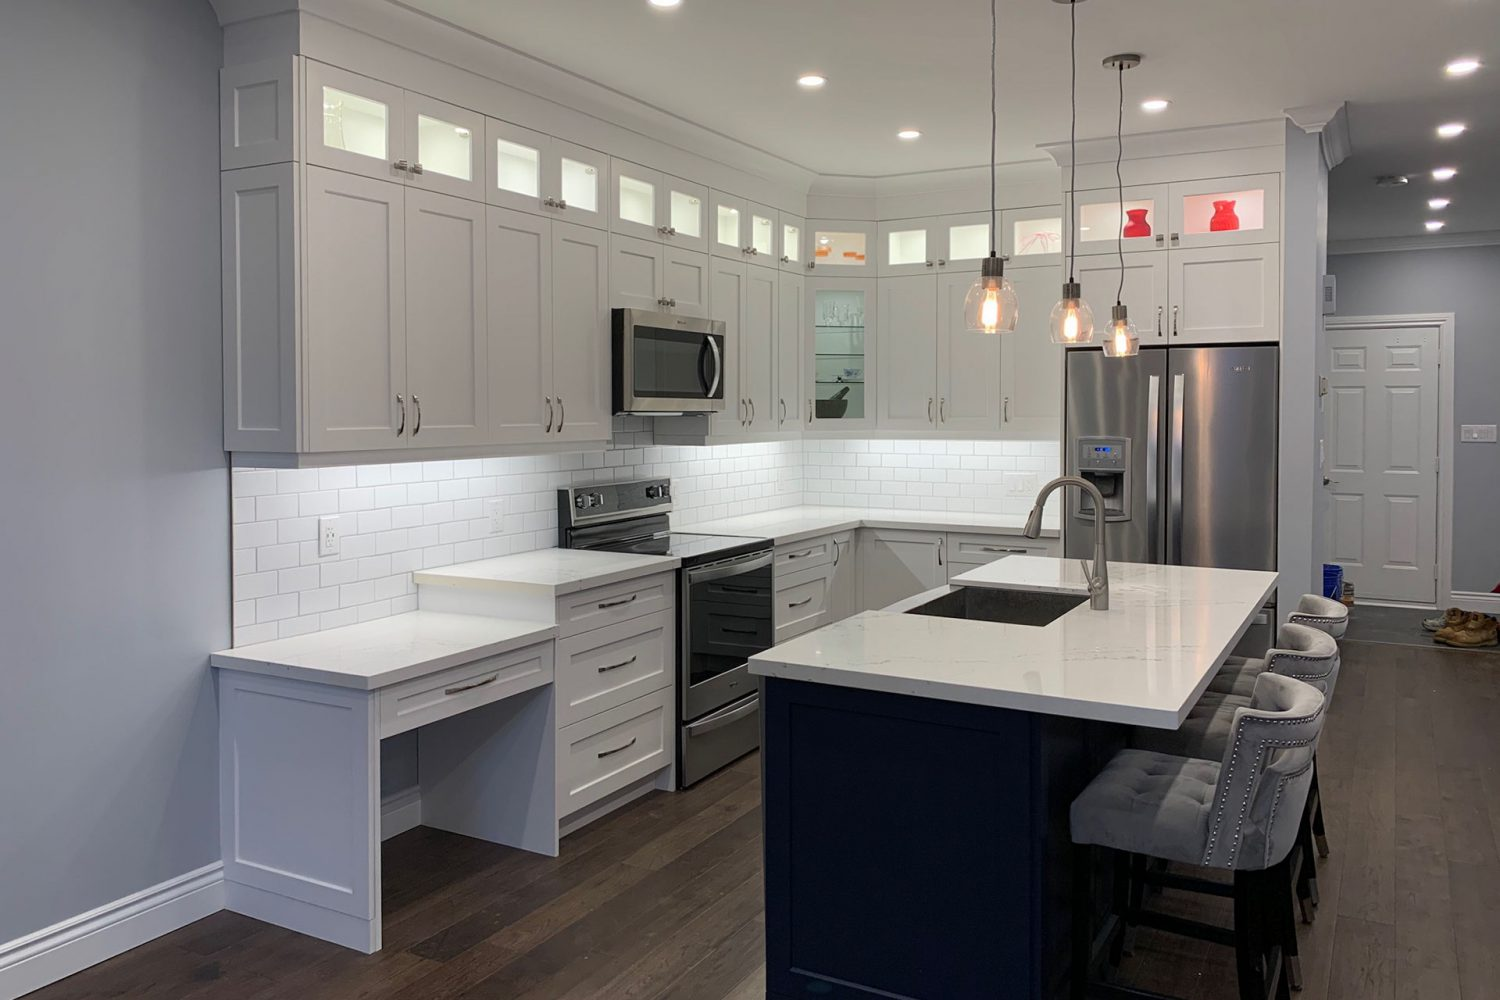 a kitchen interior with custom cabinetry